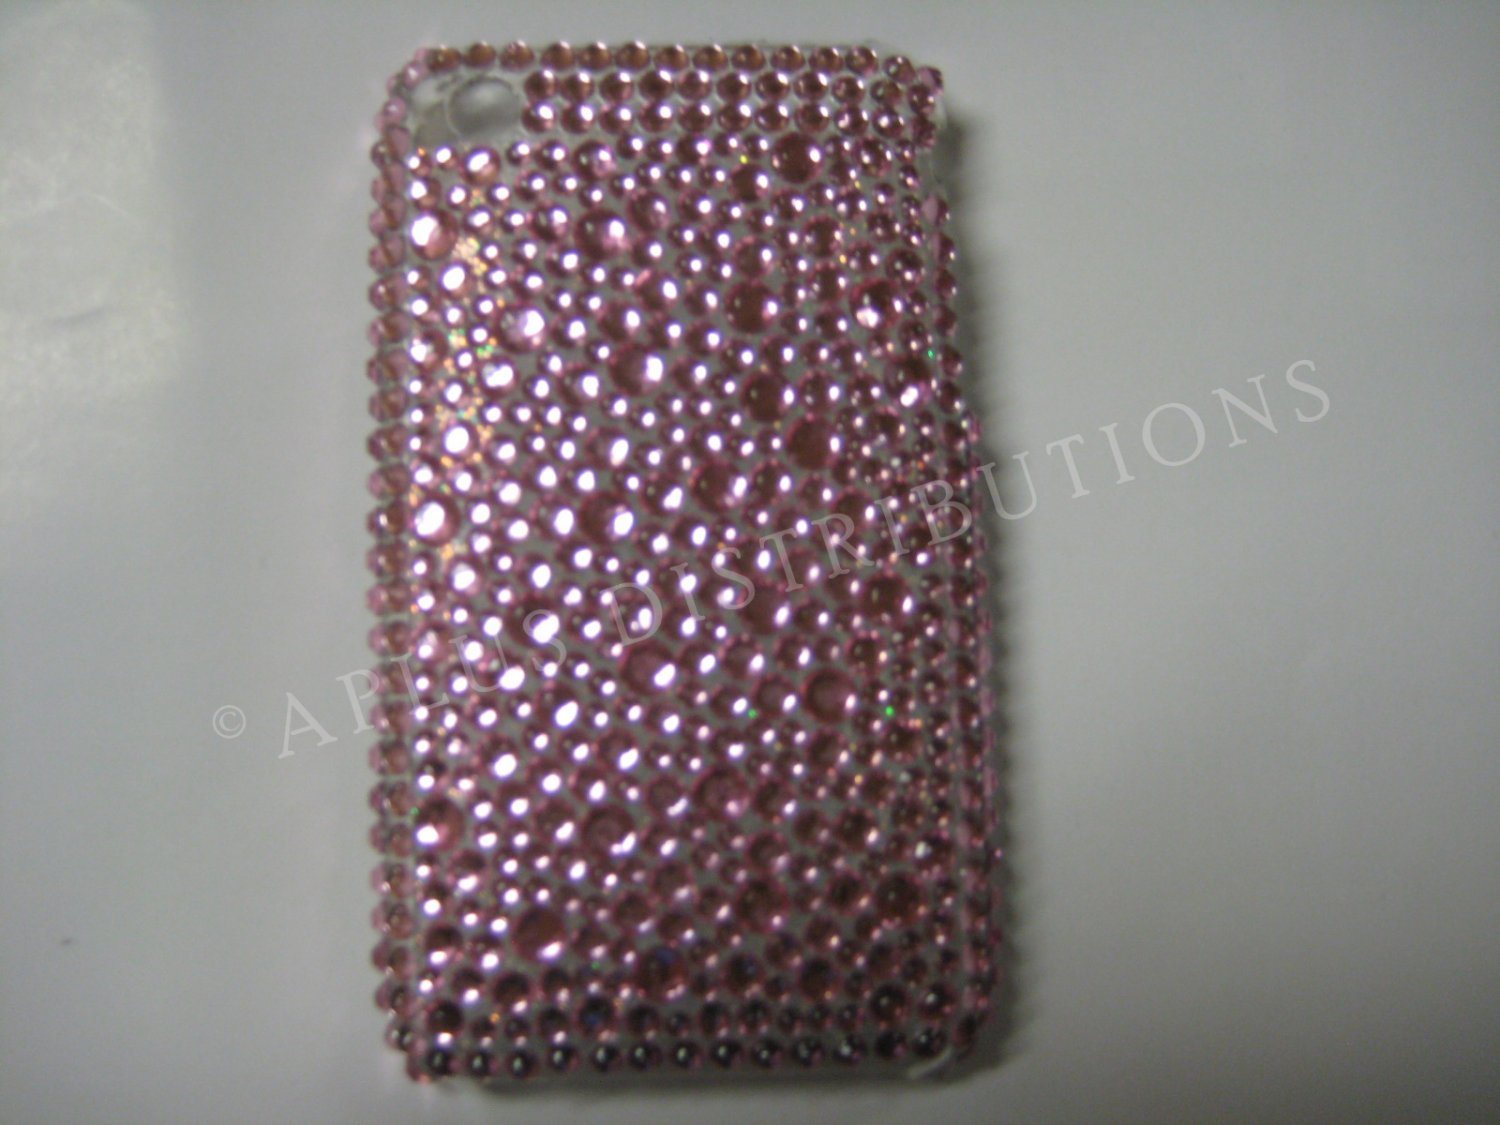 New Pink Multi-Diamonds Design Crystal Bling Diamond Case For iPhone 3G 3Gs - (0018)